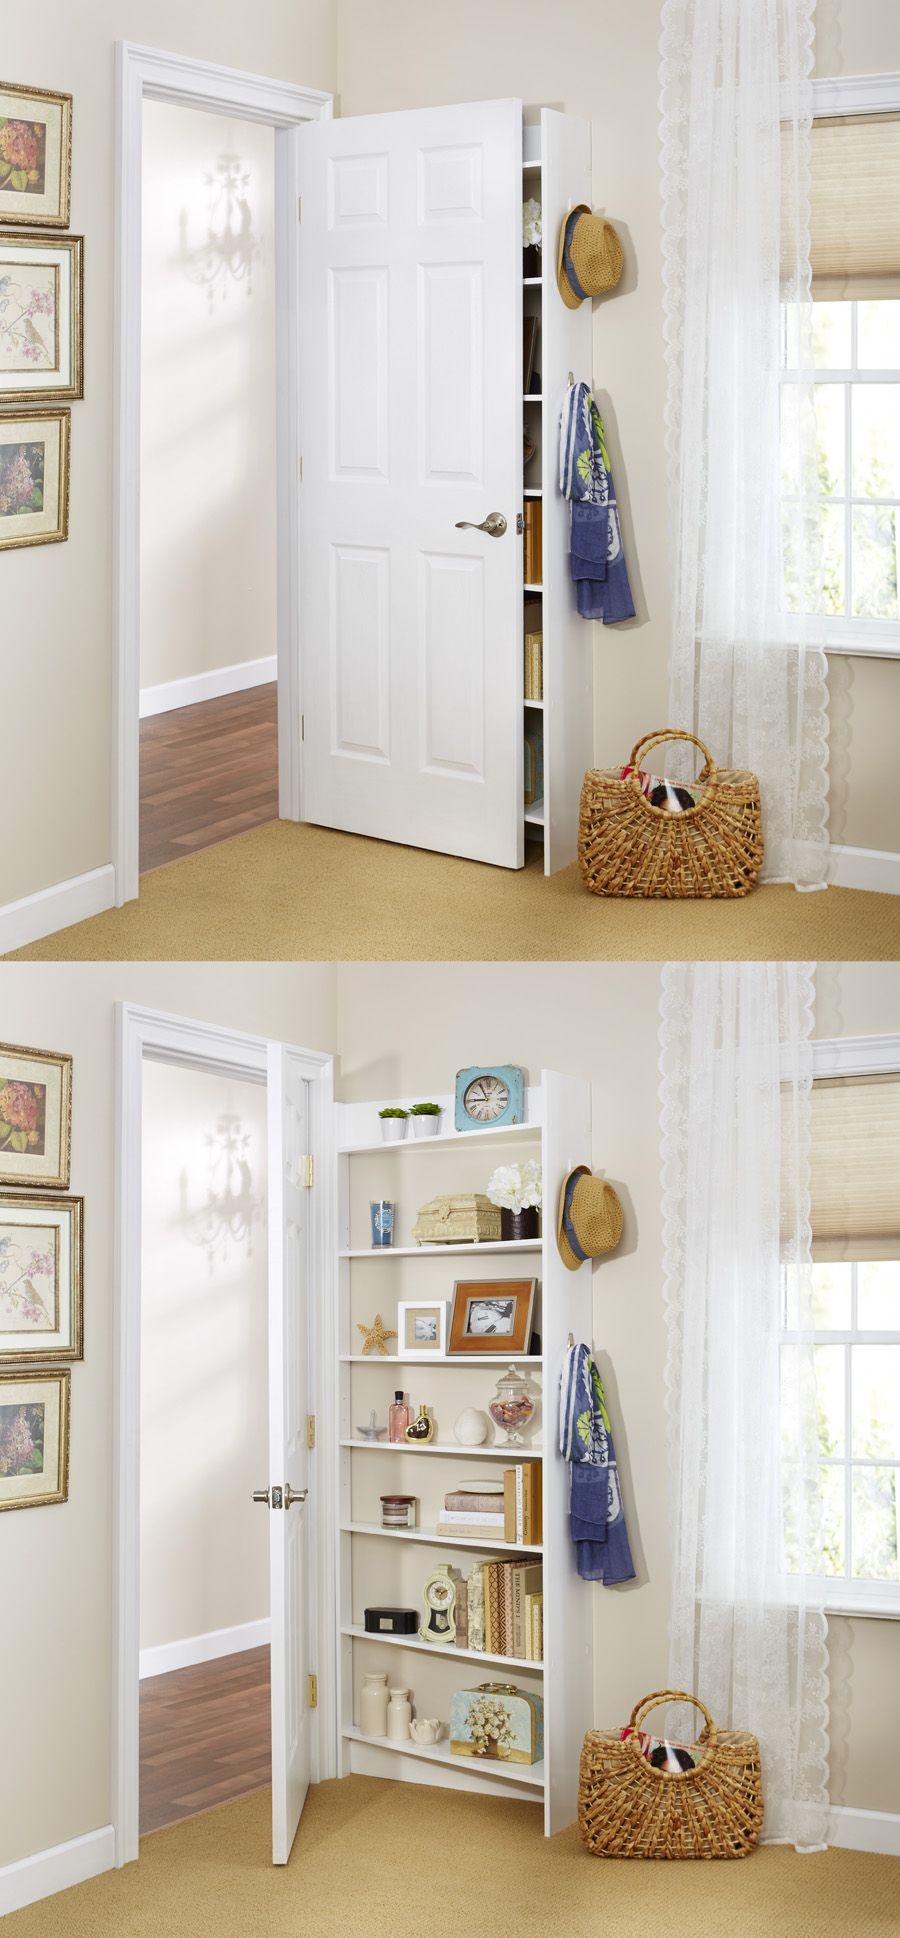 Hide Behind The Door Shelving System By Foremost Because It S